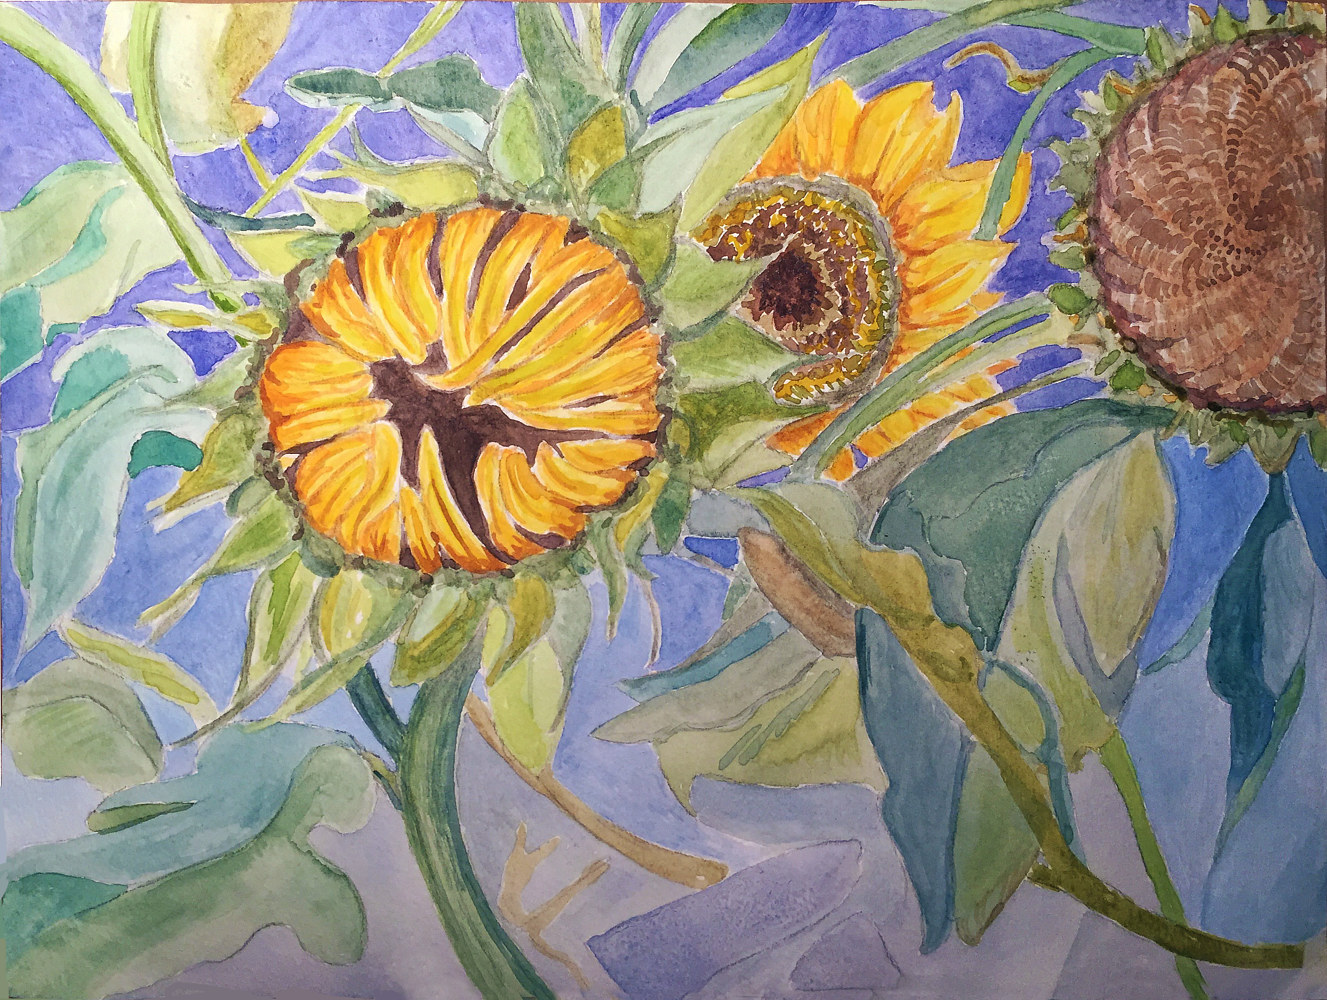 Watercolor Sunflowers by Anastasia O'melveny